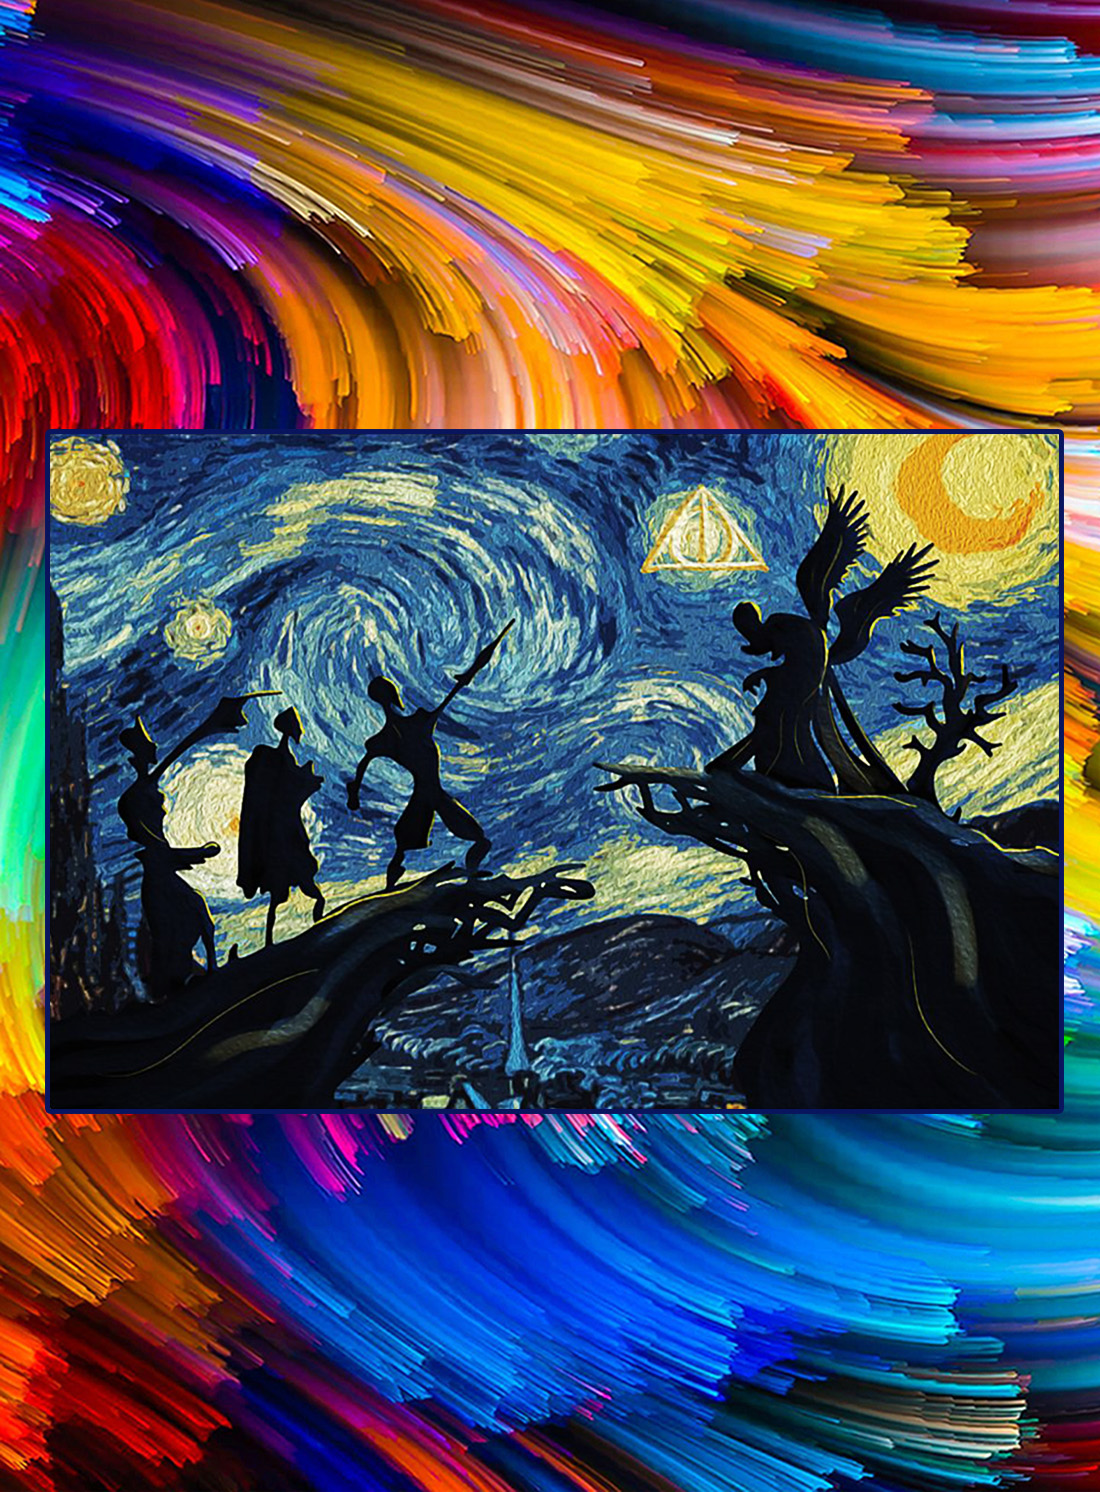 Deathly hallows harry potter starry night poster - A4